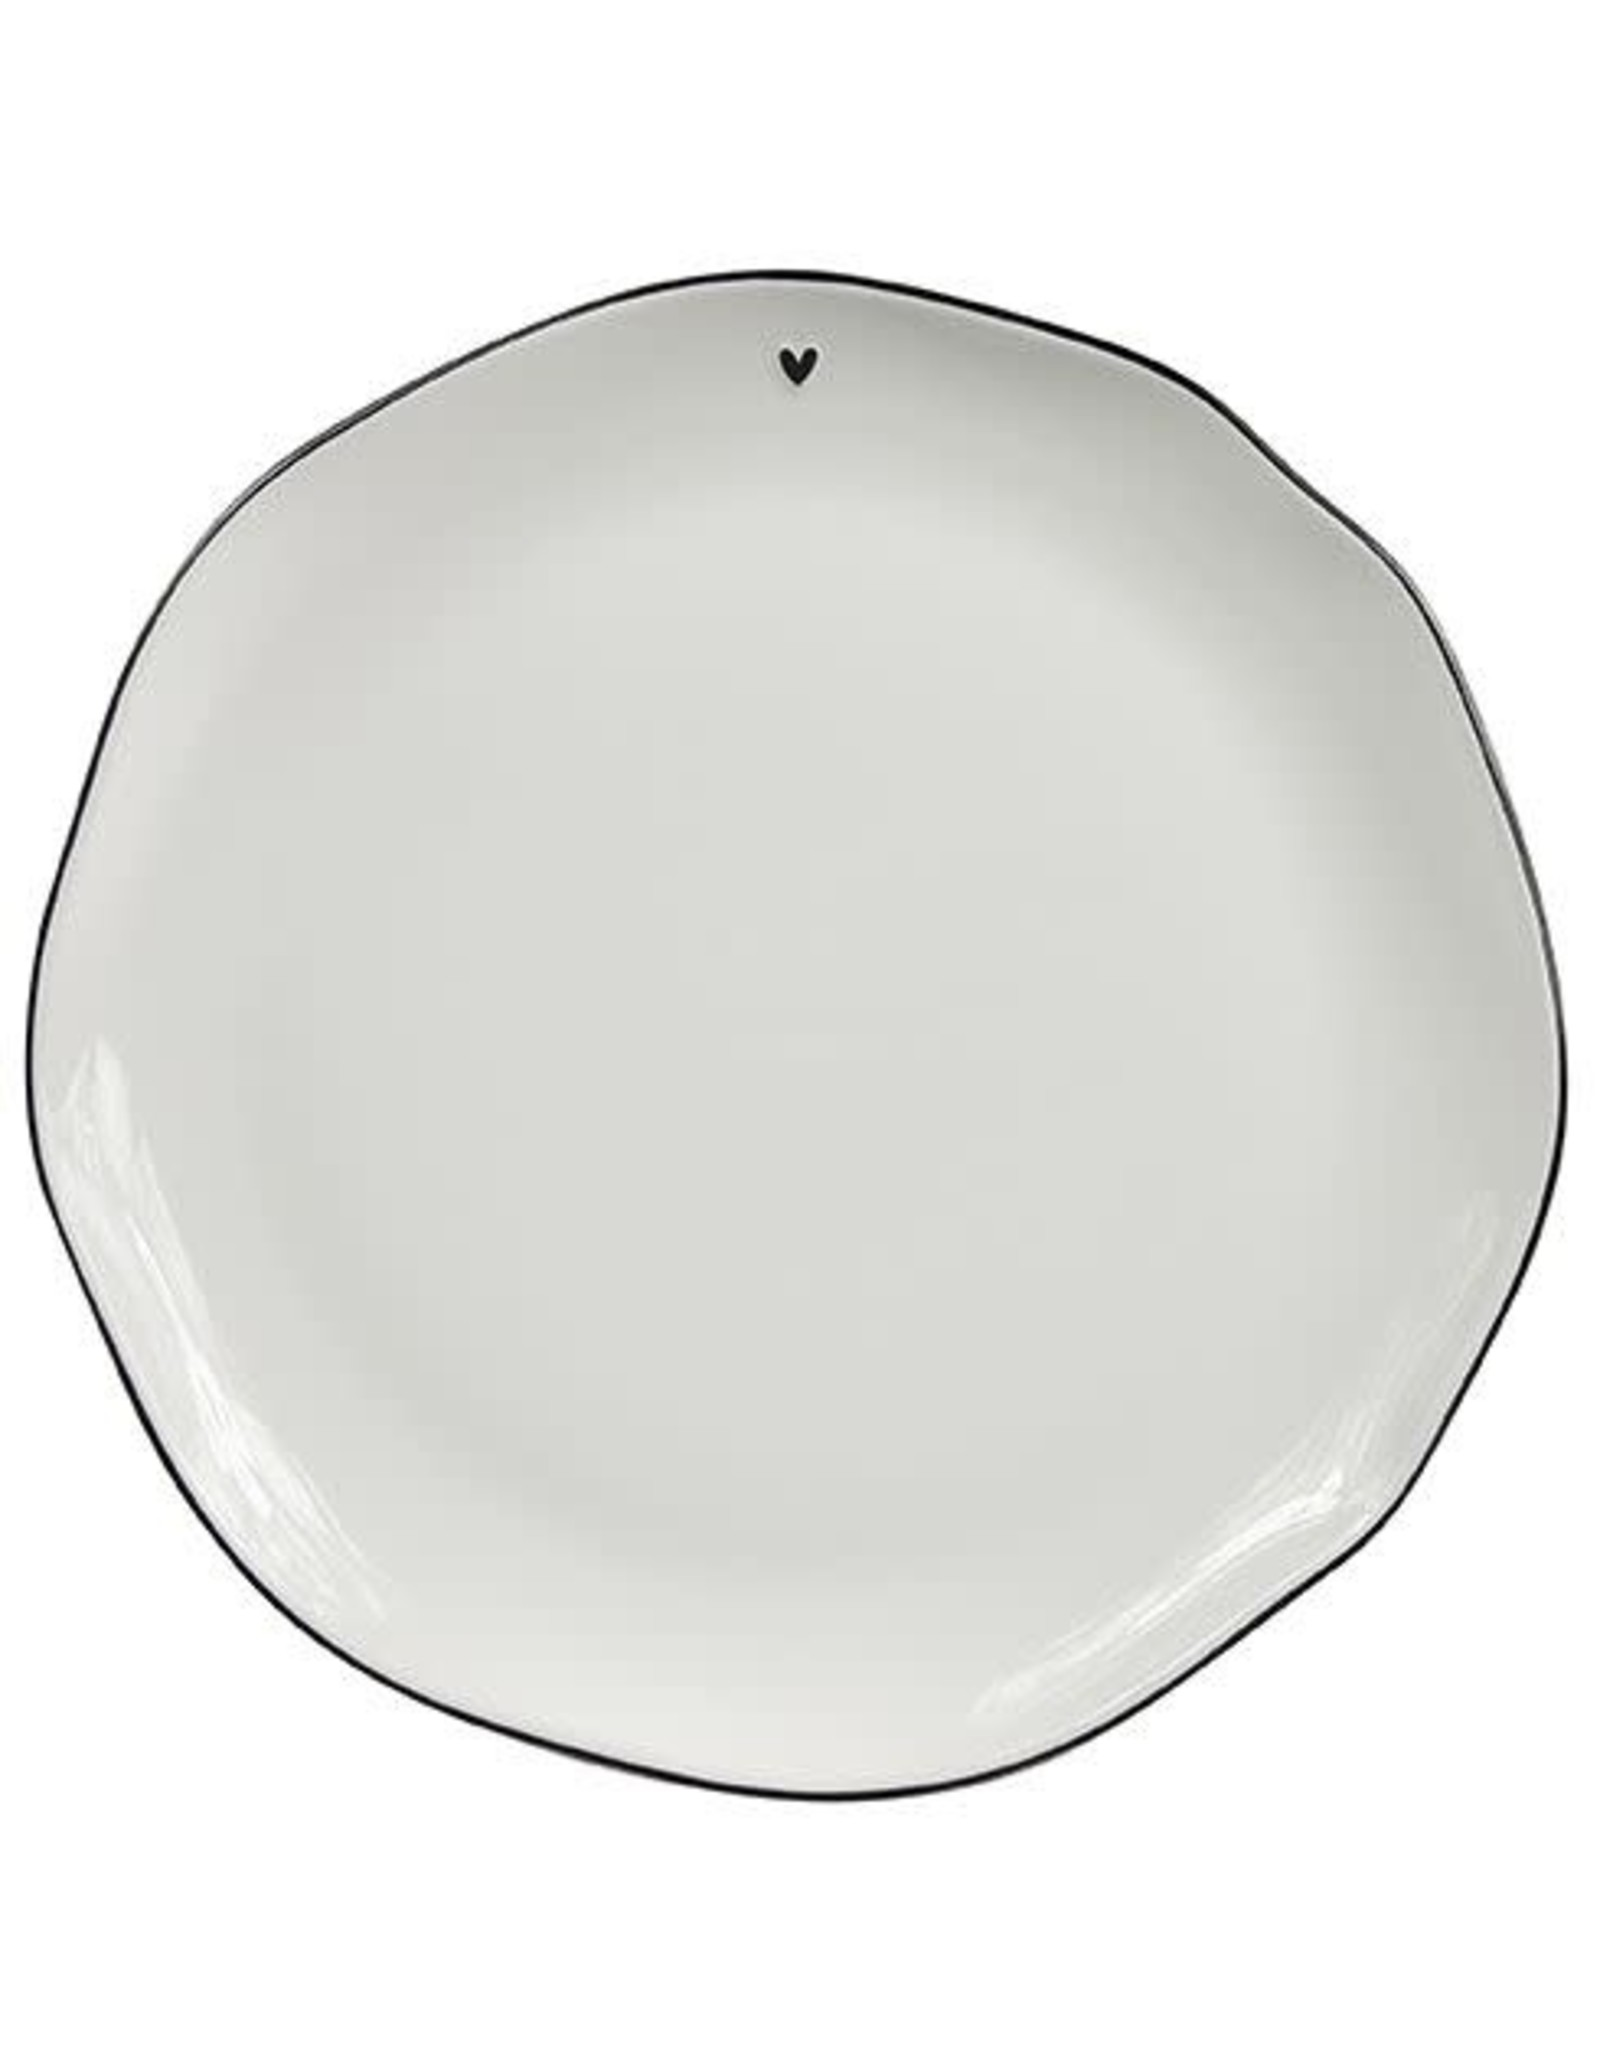 Bastion Collections Bastion Collections Dinner Plate LI/Dinner 001 BL